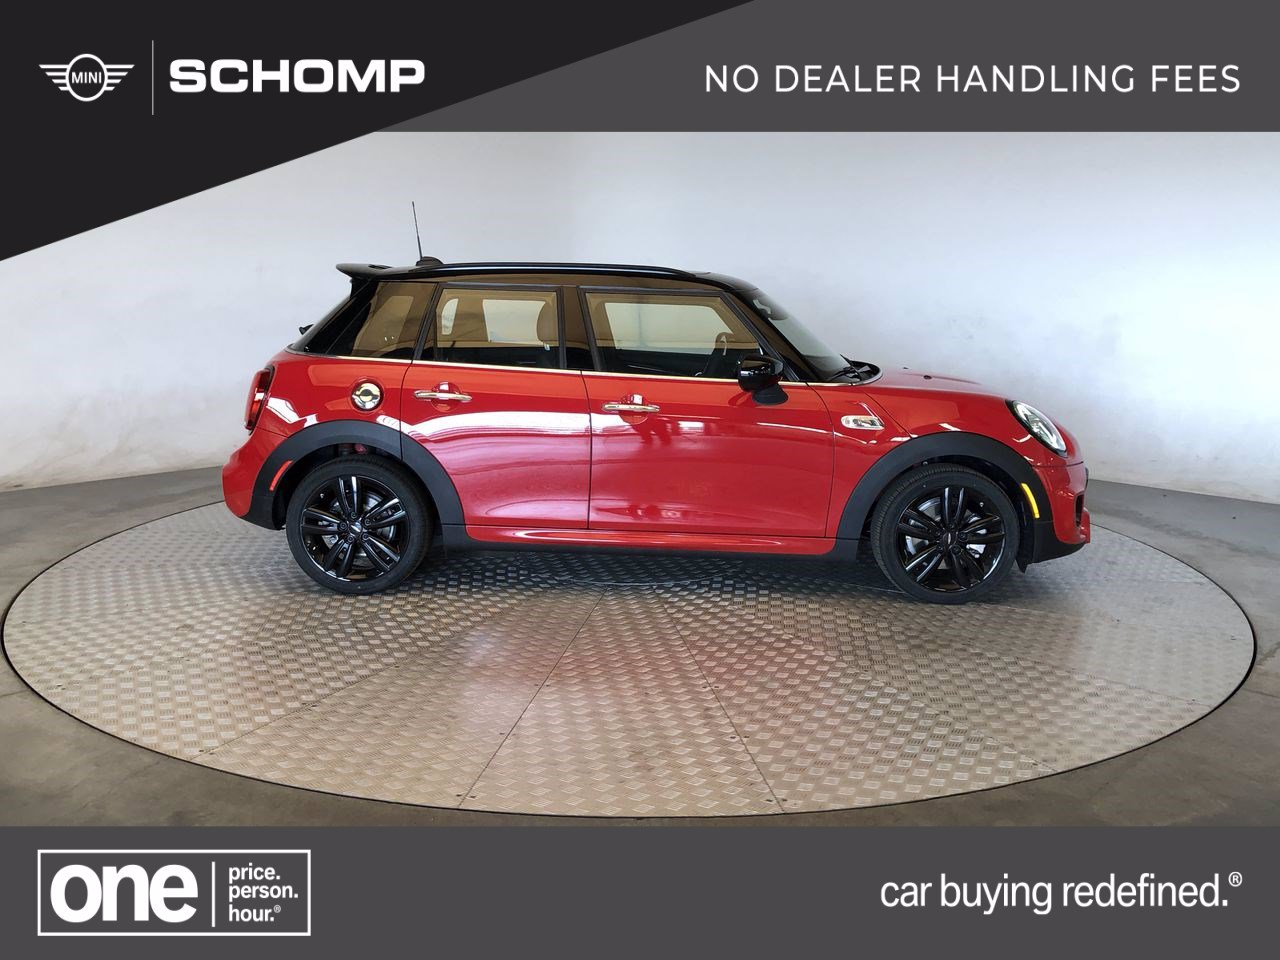 New 2020 MINI Hardtop 4 Door Cooper S Iconic